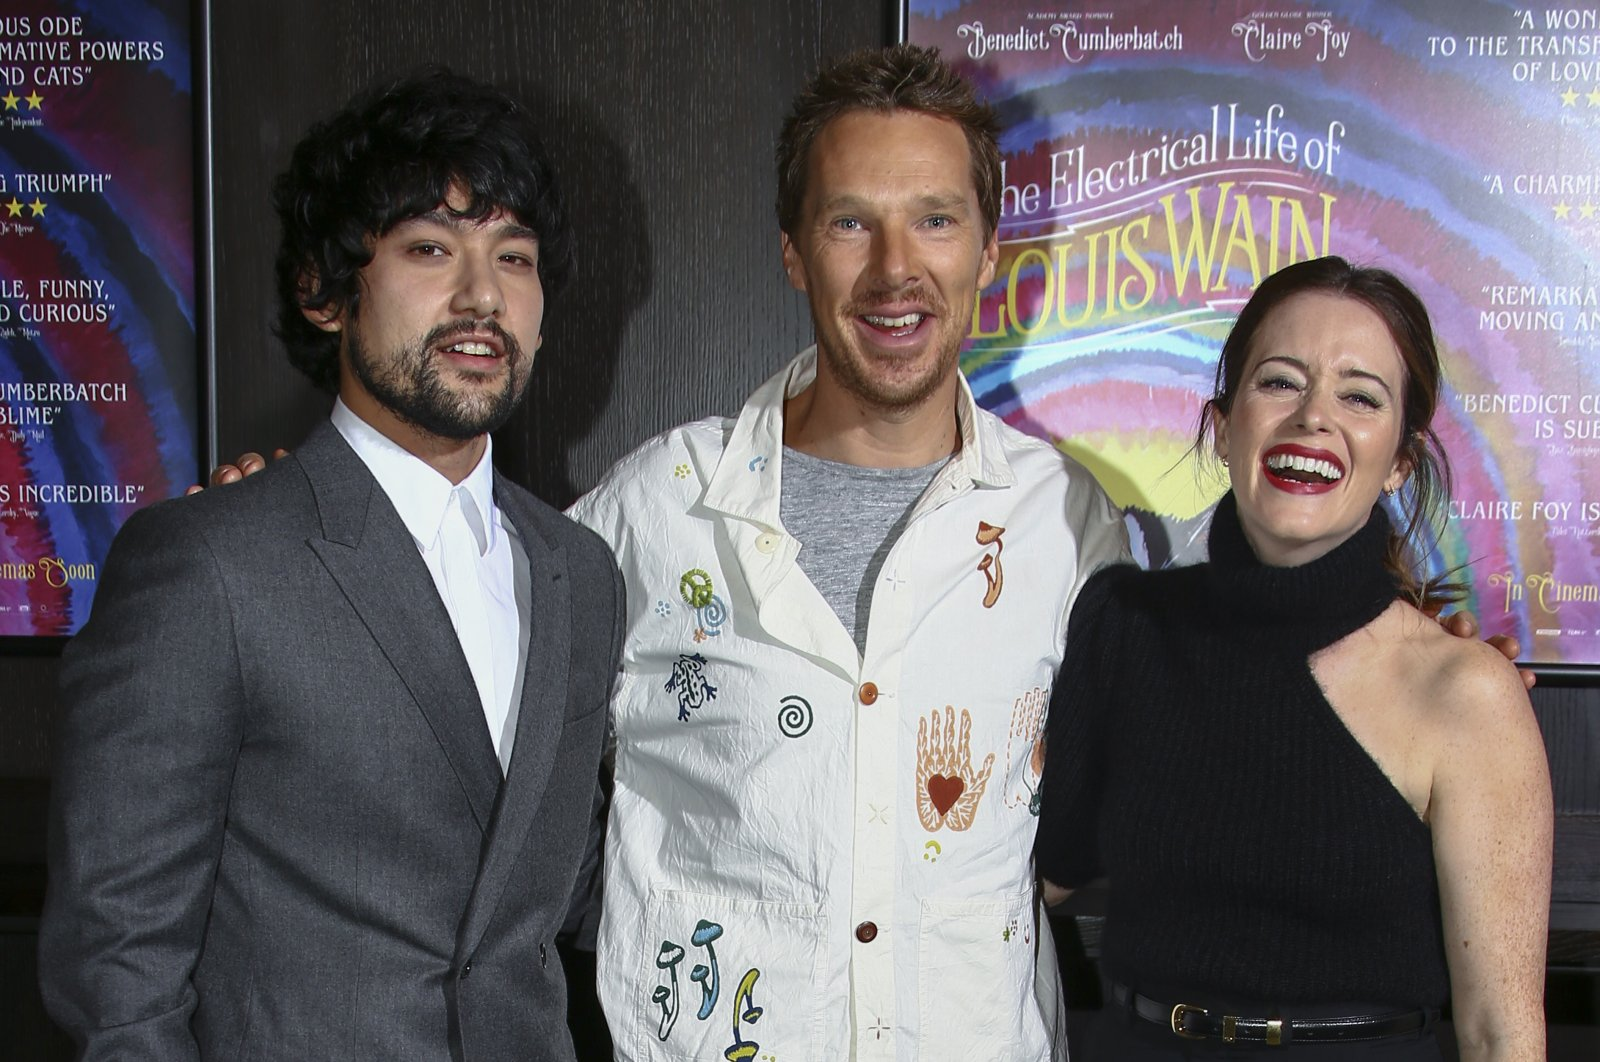 """(L-R) Will Sharpe, Benedict Cumberbatch and Claire Foy pose for photographers at the photocall for the film """"The Electrical Life of Louis Wain"""" in London, Oct. 10, 2021. (AP Photo)"""